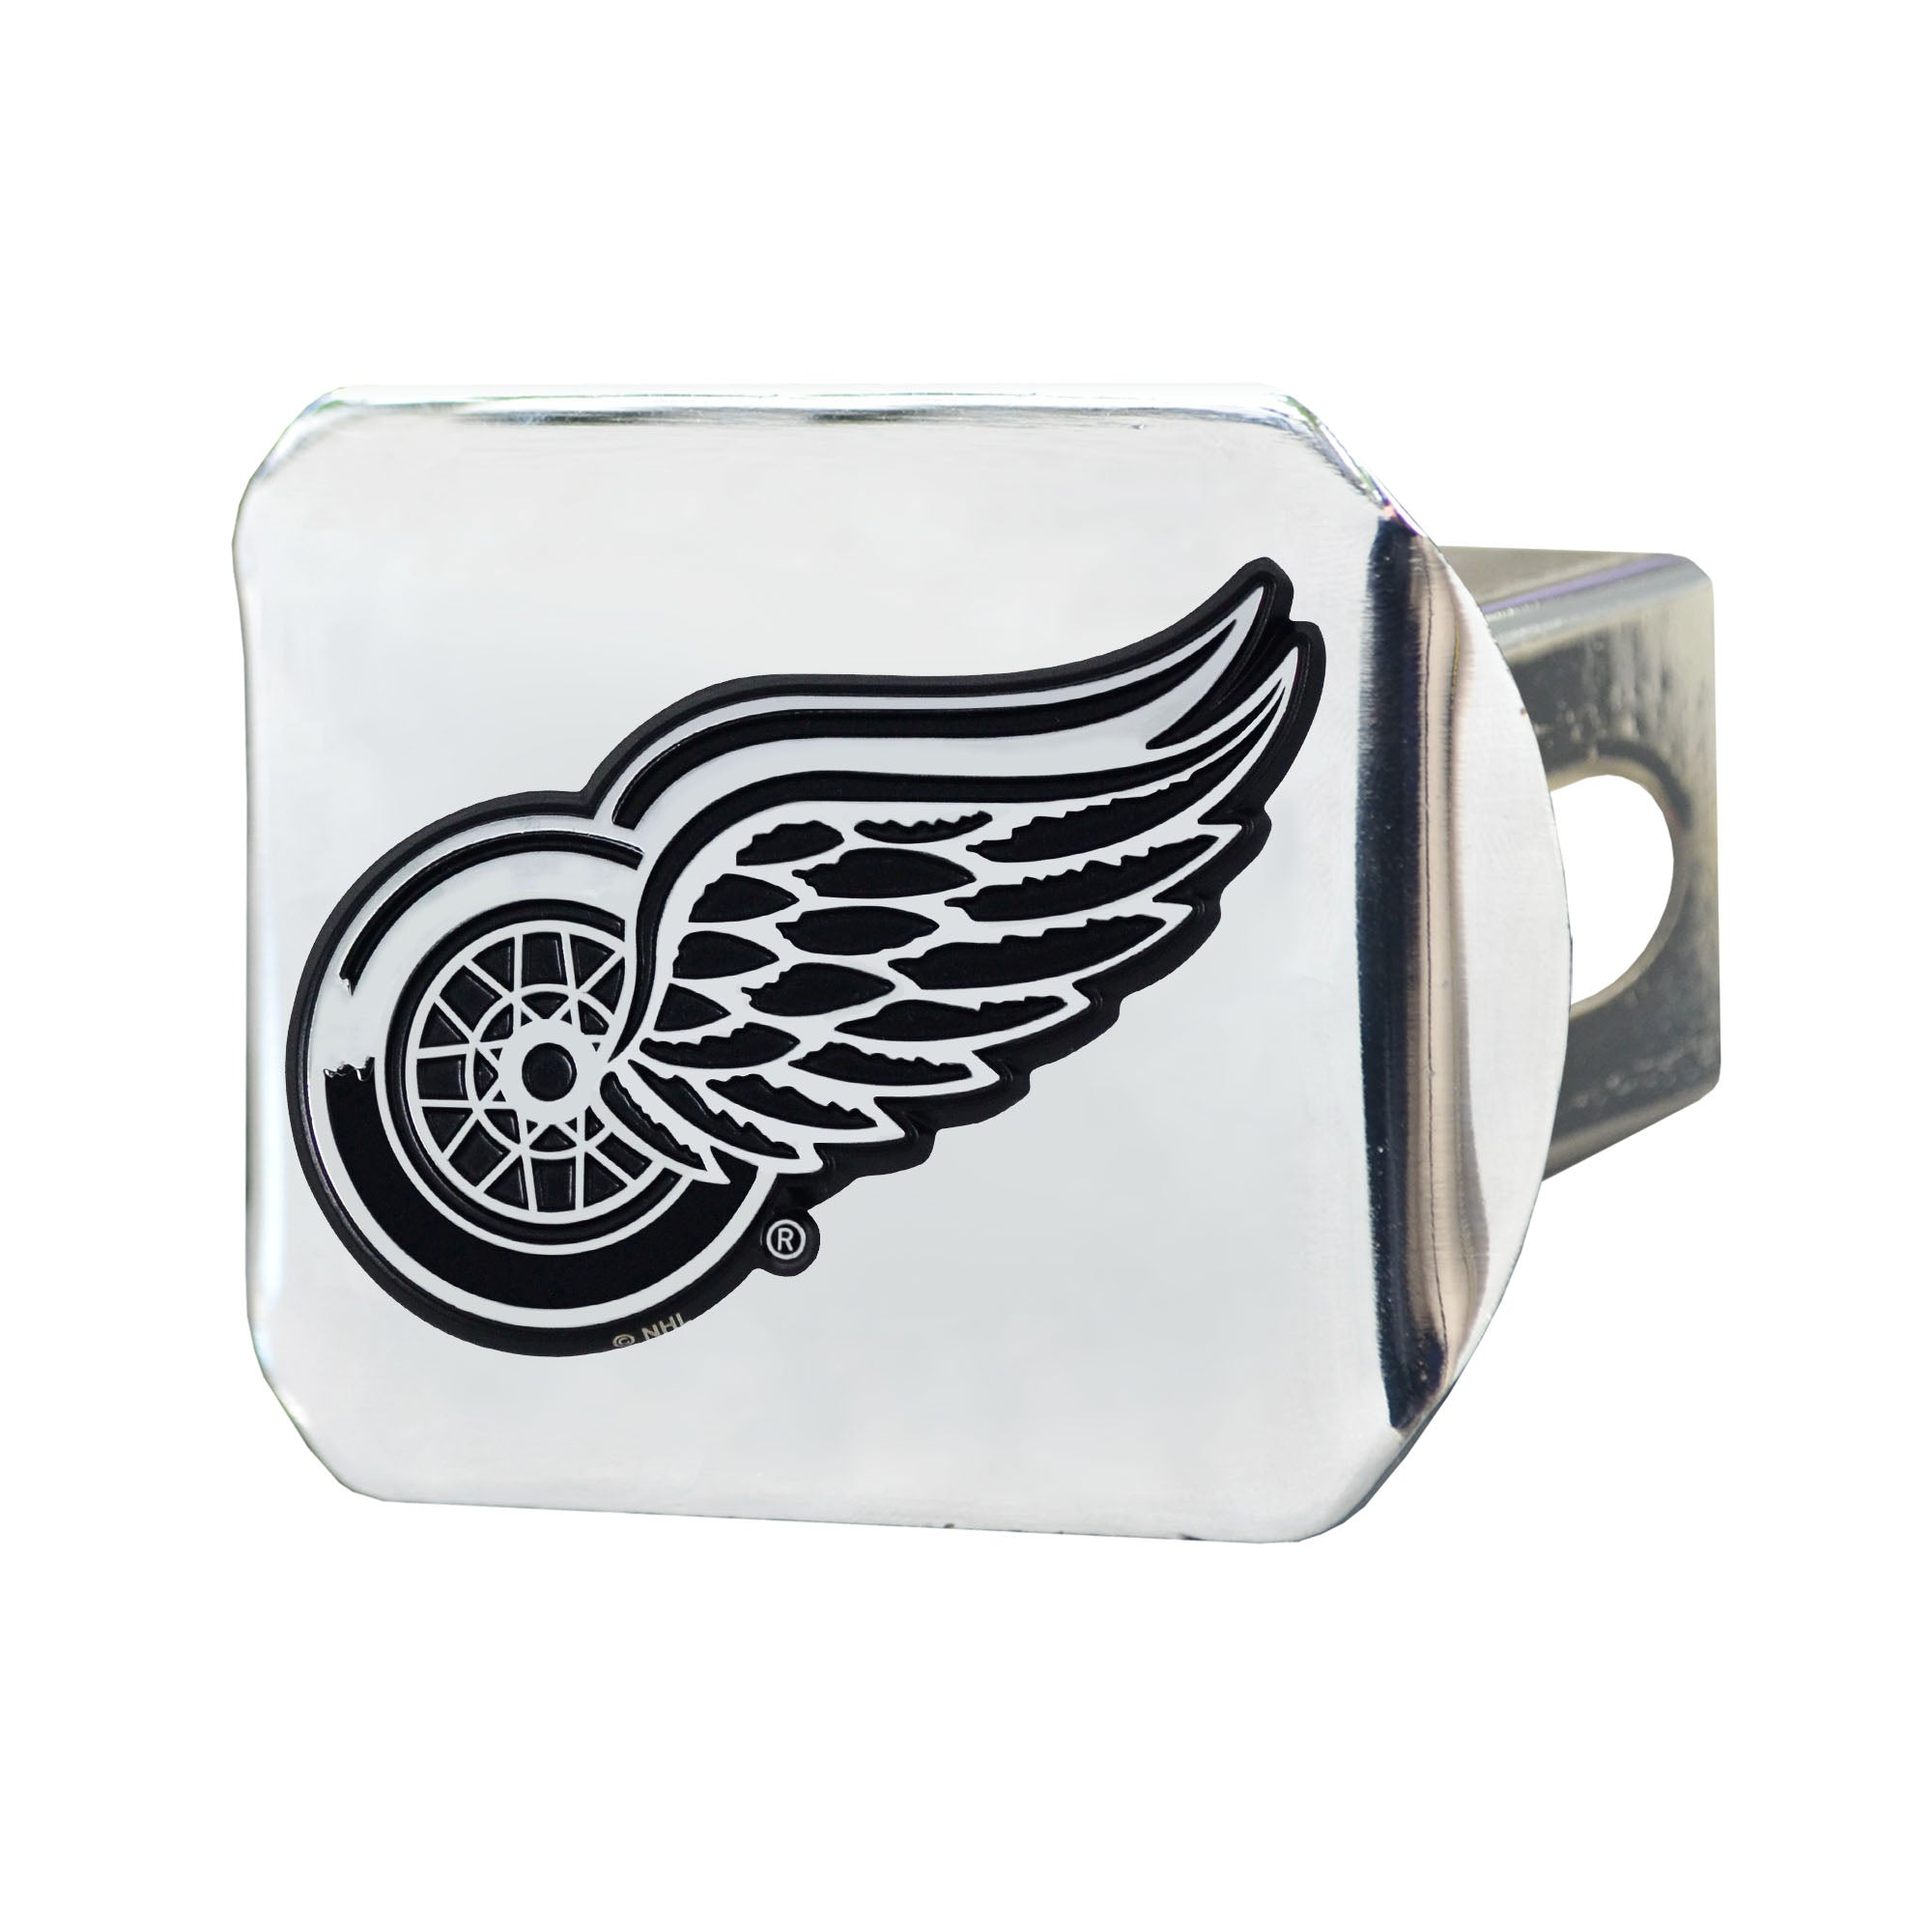 "NHL - Detroit Red Wings Hitch Cover - Chrome on Chrome 3.4""x4"""